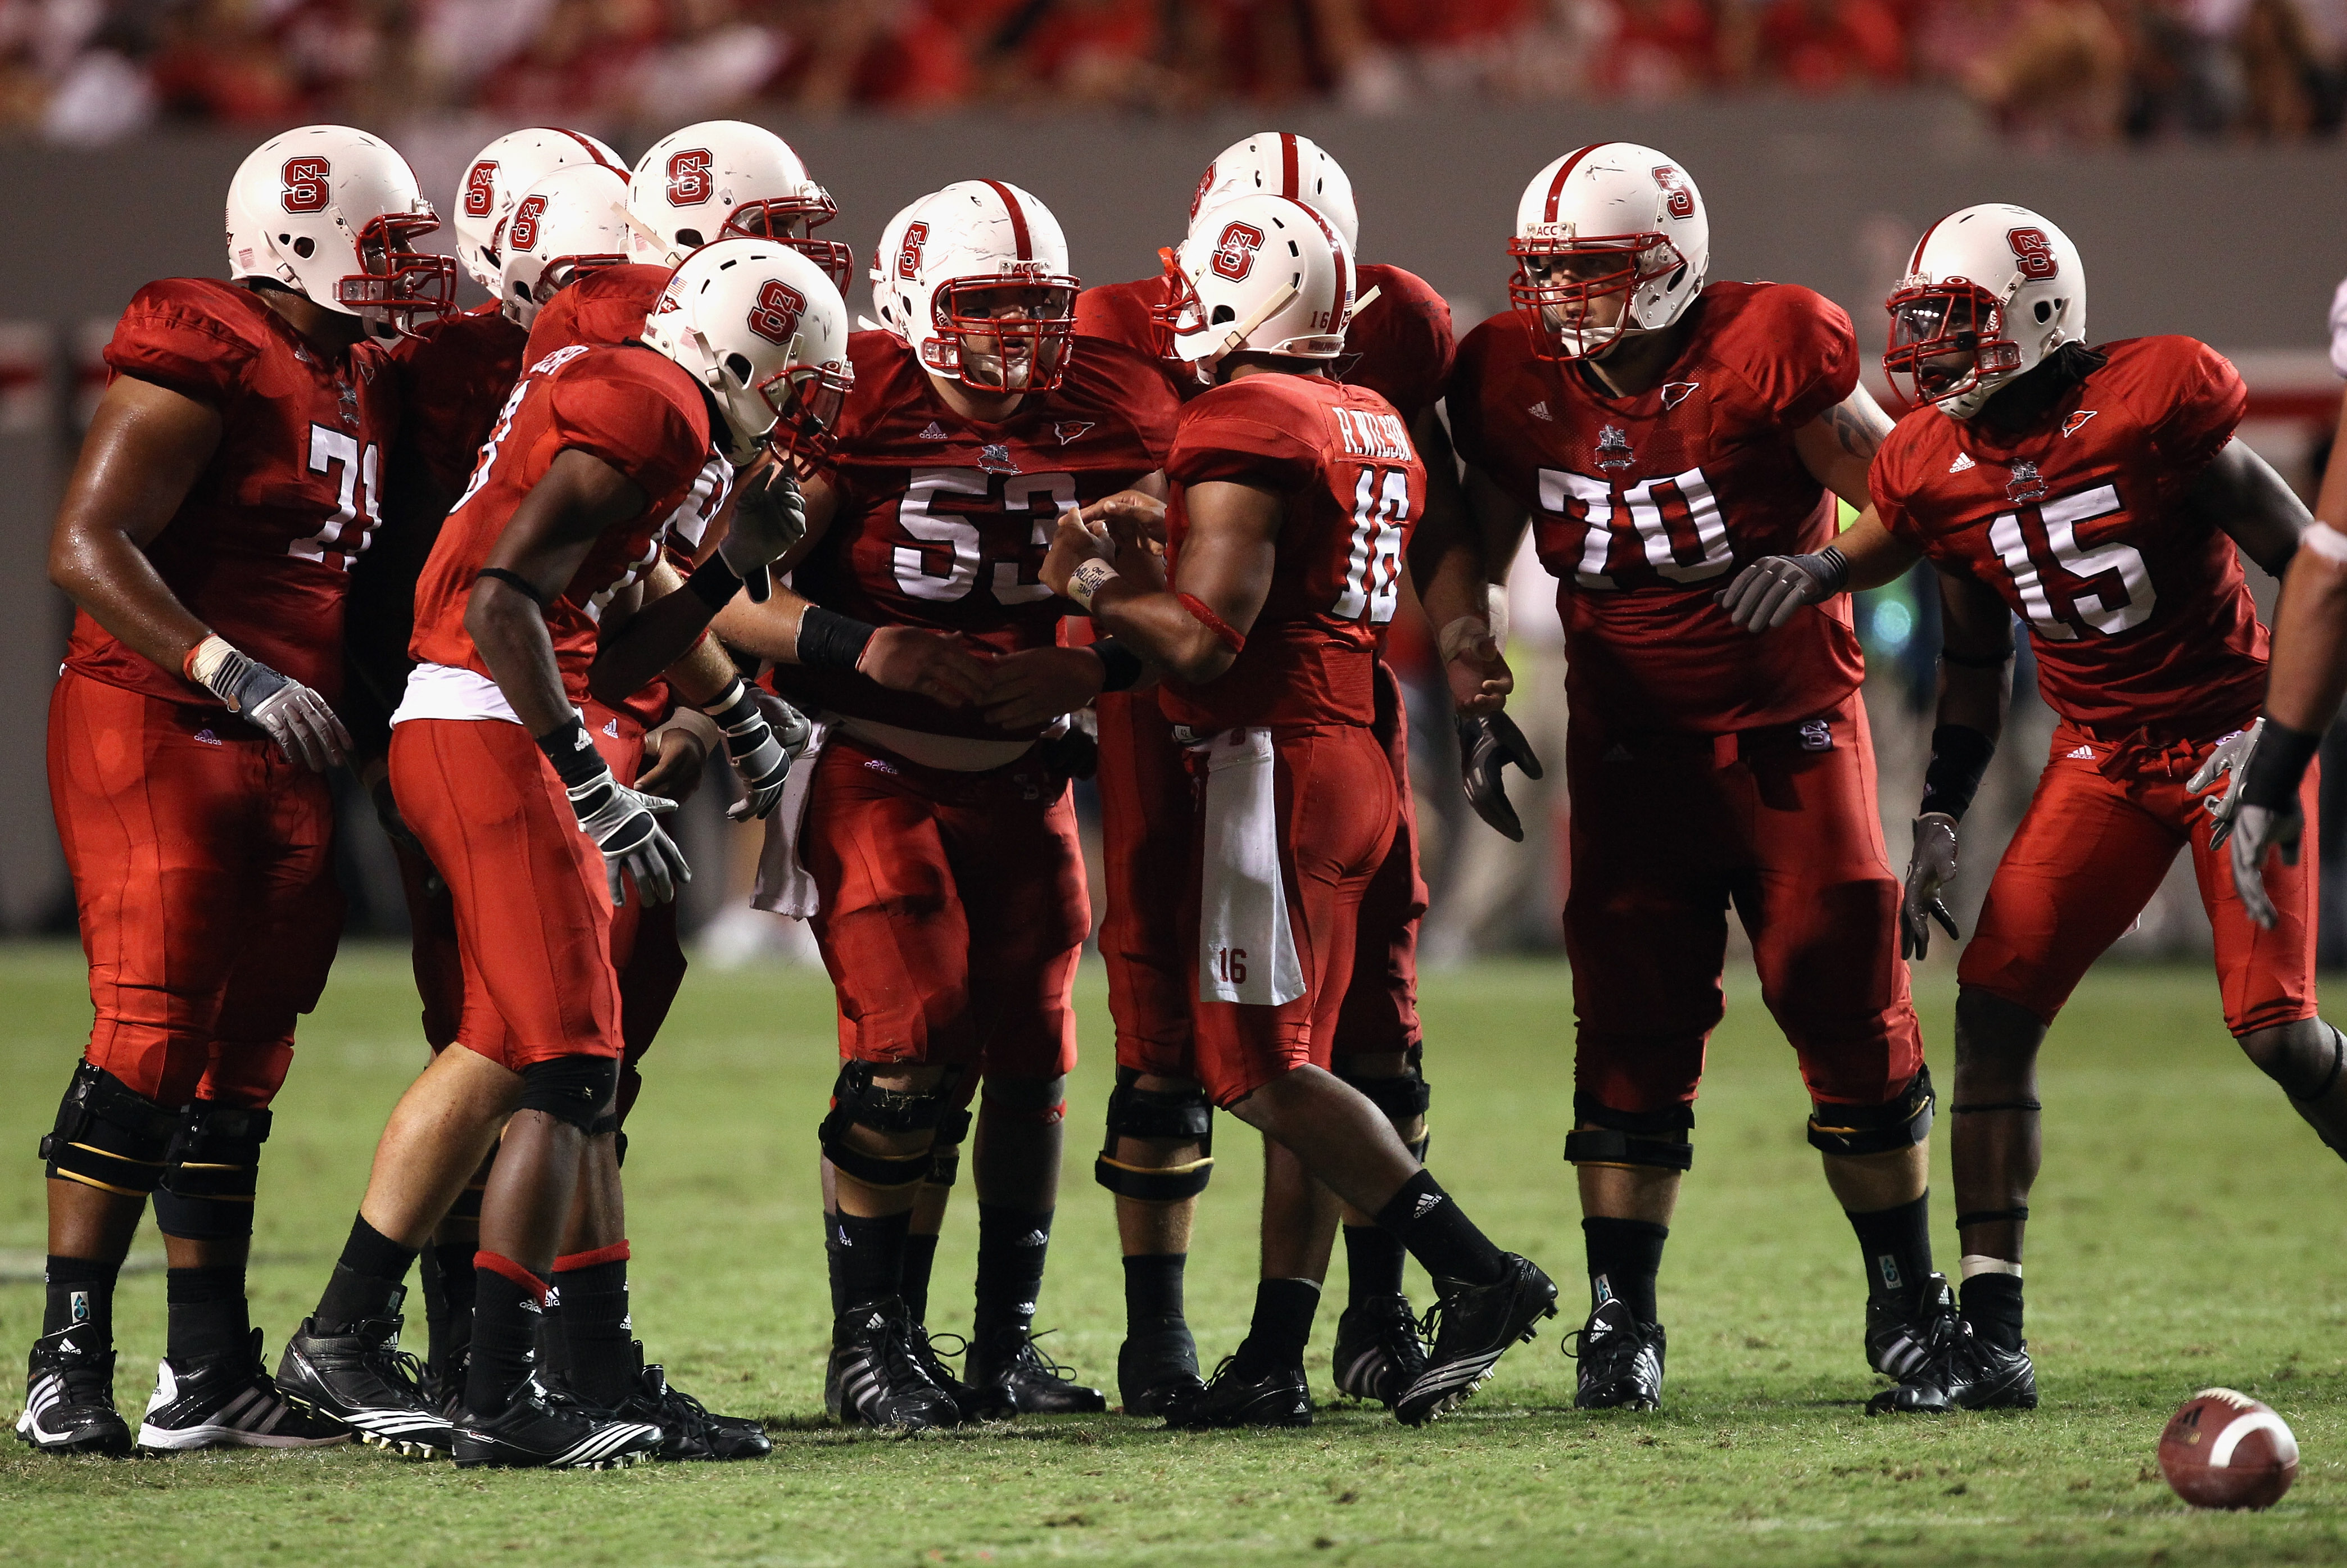 RALEIGH, NC - SEPTEMBER 16:  Russell Wilson #16 of the North Carolina State Wolfpack talks to his team in the huddle against the Cincinnati Bearcats during their game at Carter-Finley Stadium on September 16, 2010 in Raleigh, North Carolina.  (Photo by St